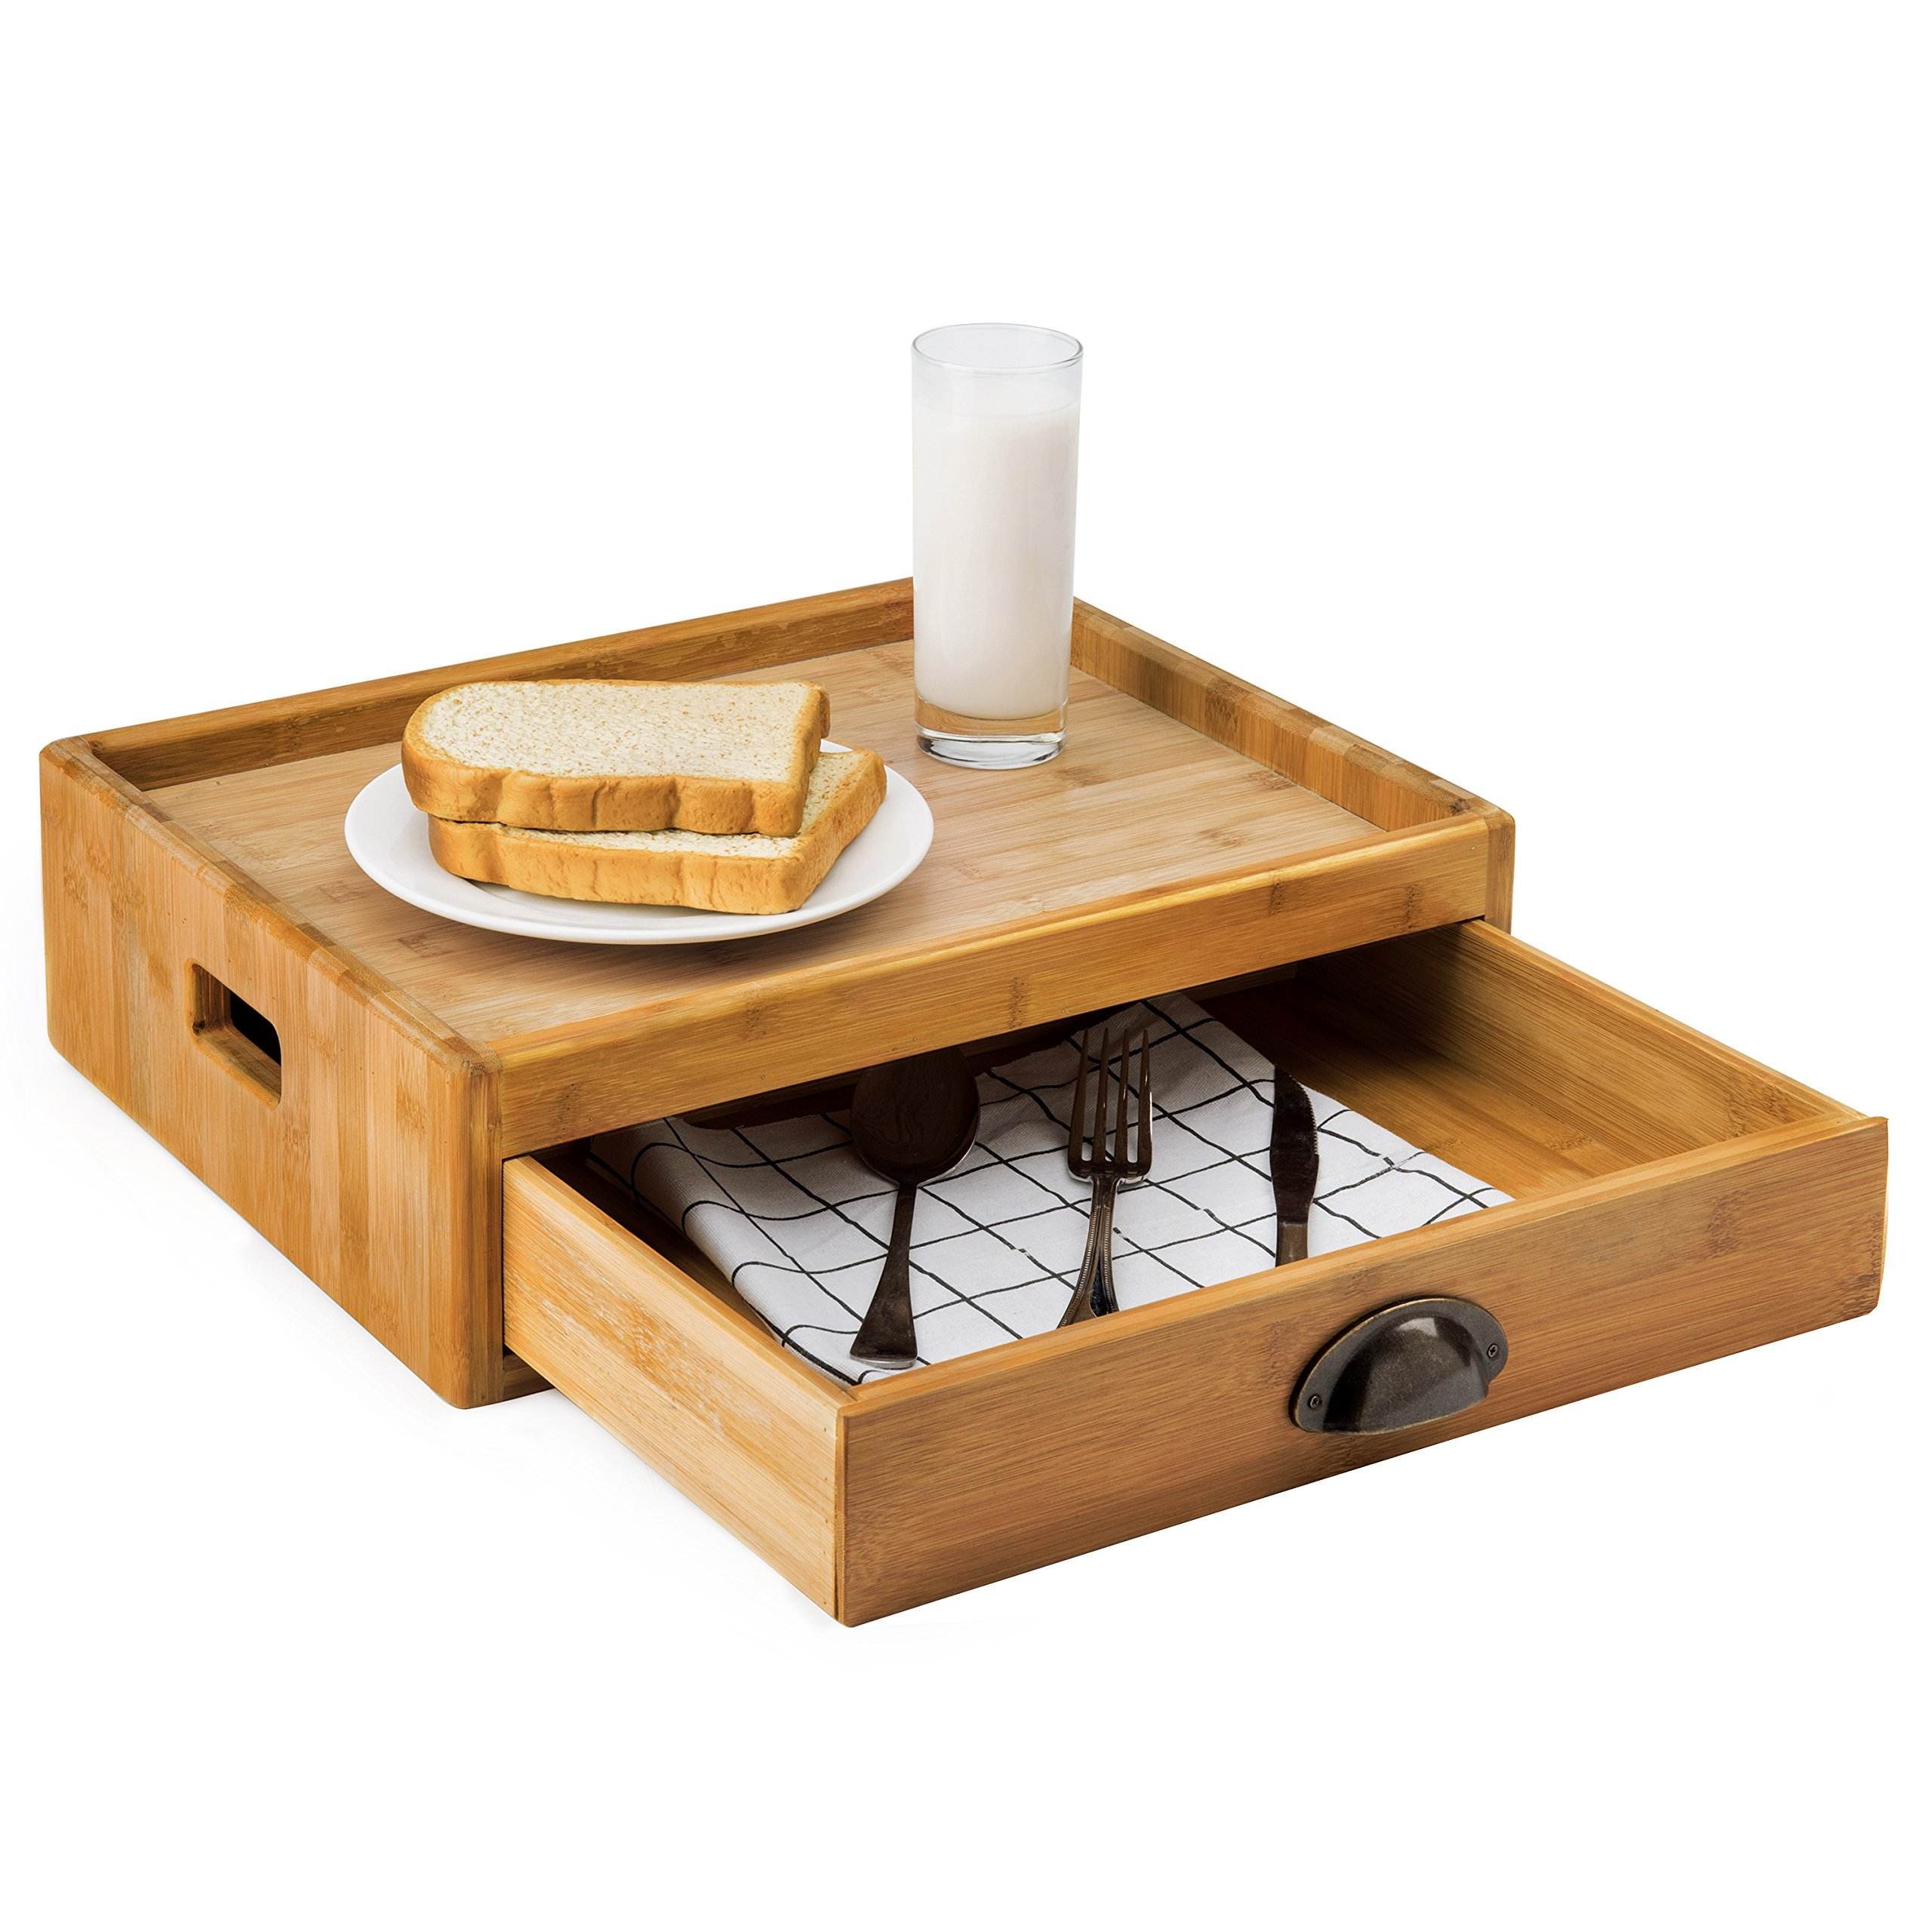 MyGift 16-Inch Natural Bamboo Serving Tray with Utensil & Napkin Storage Drawer